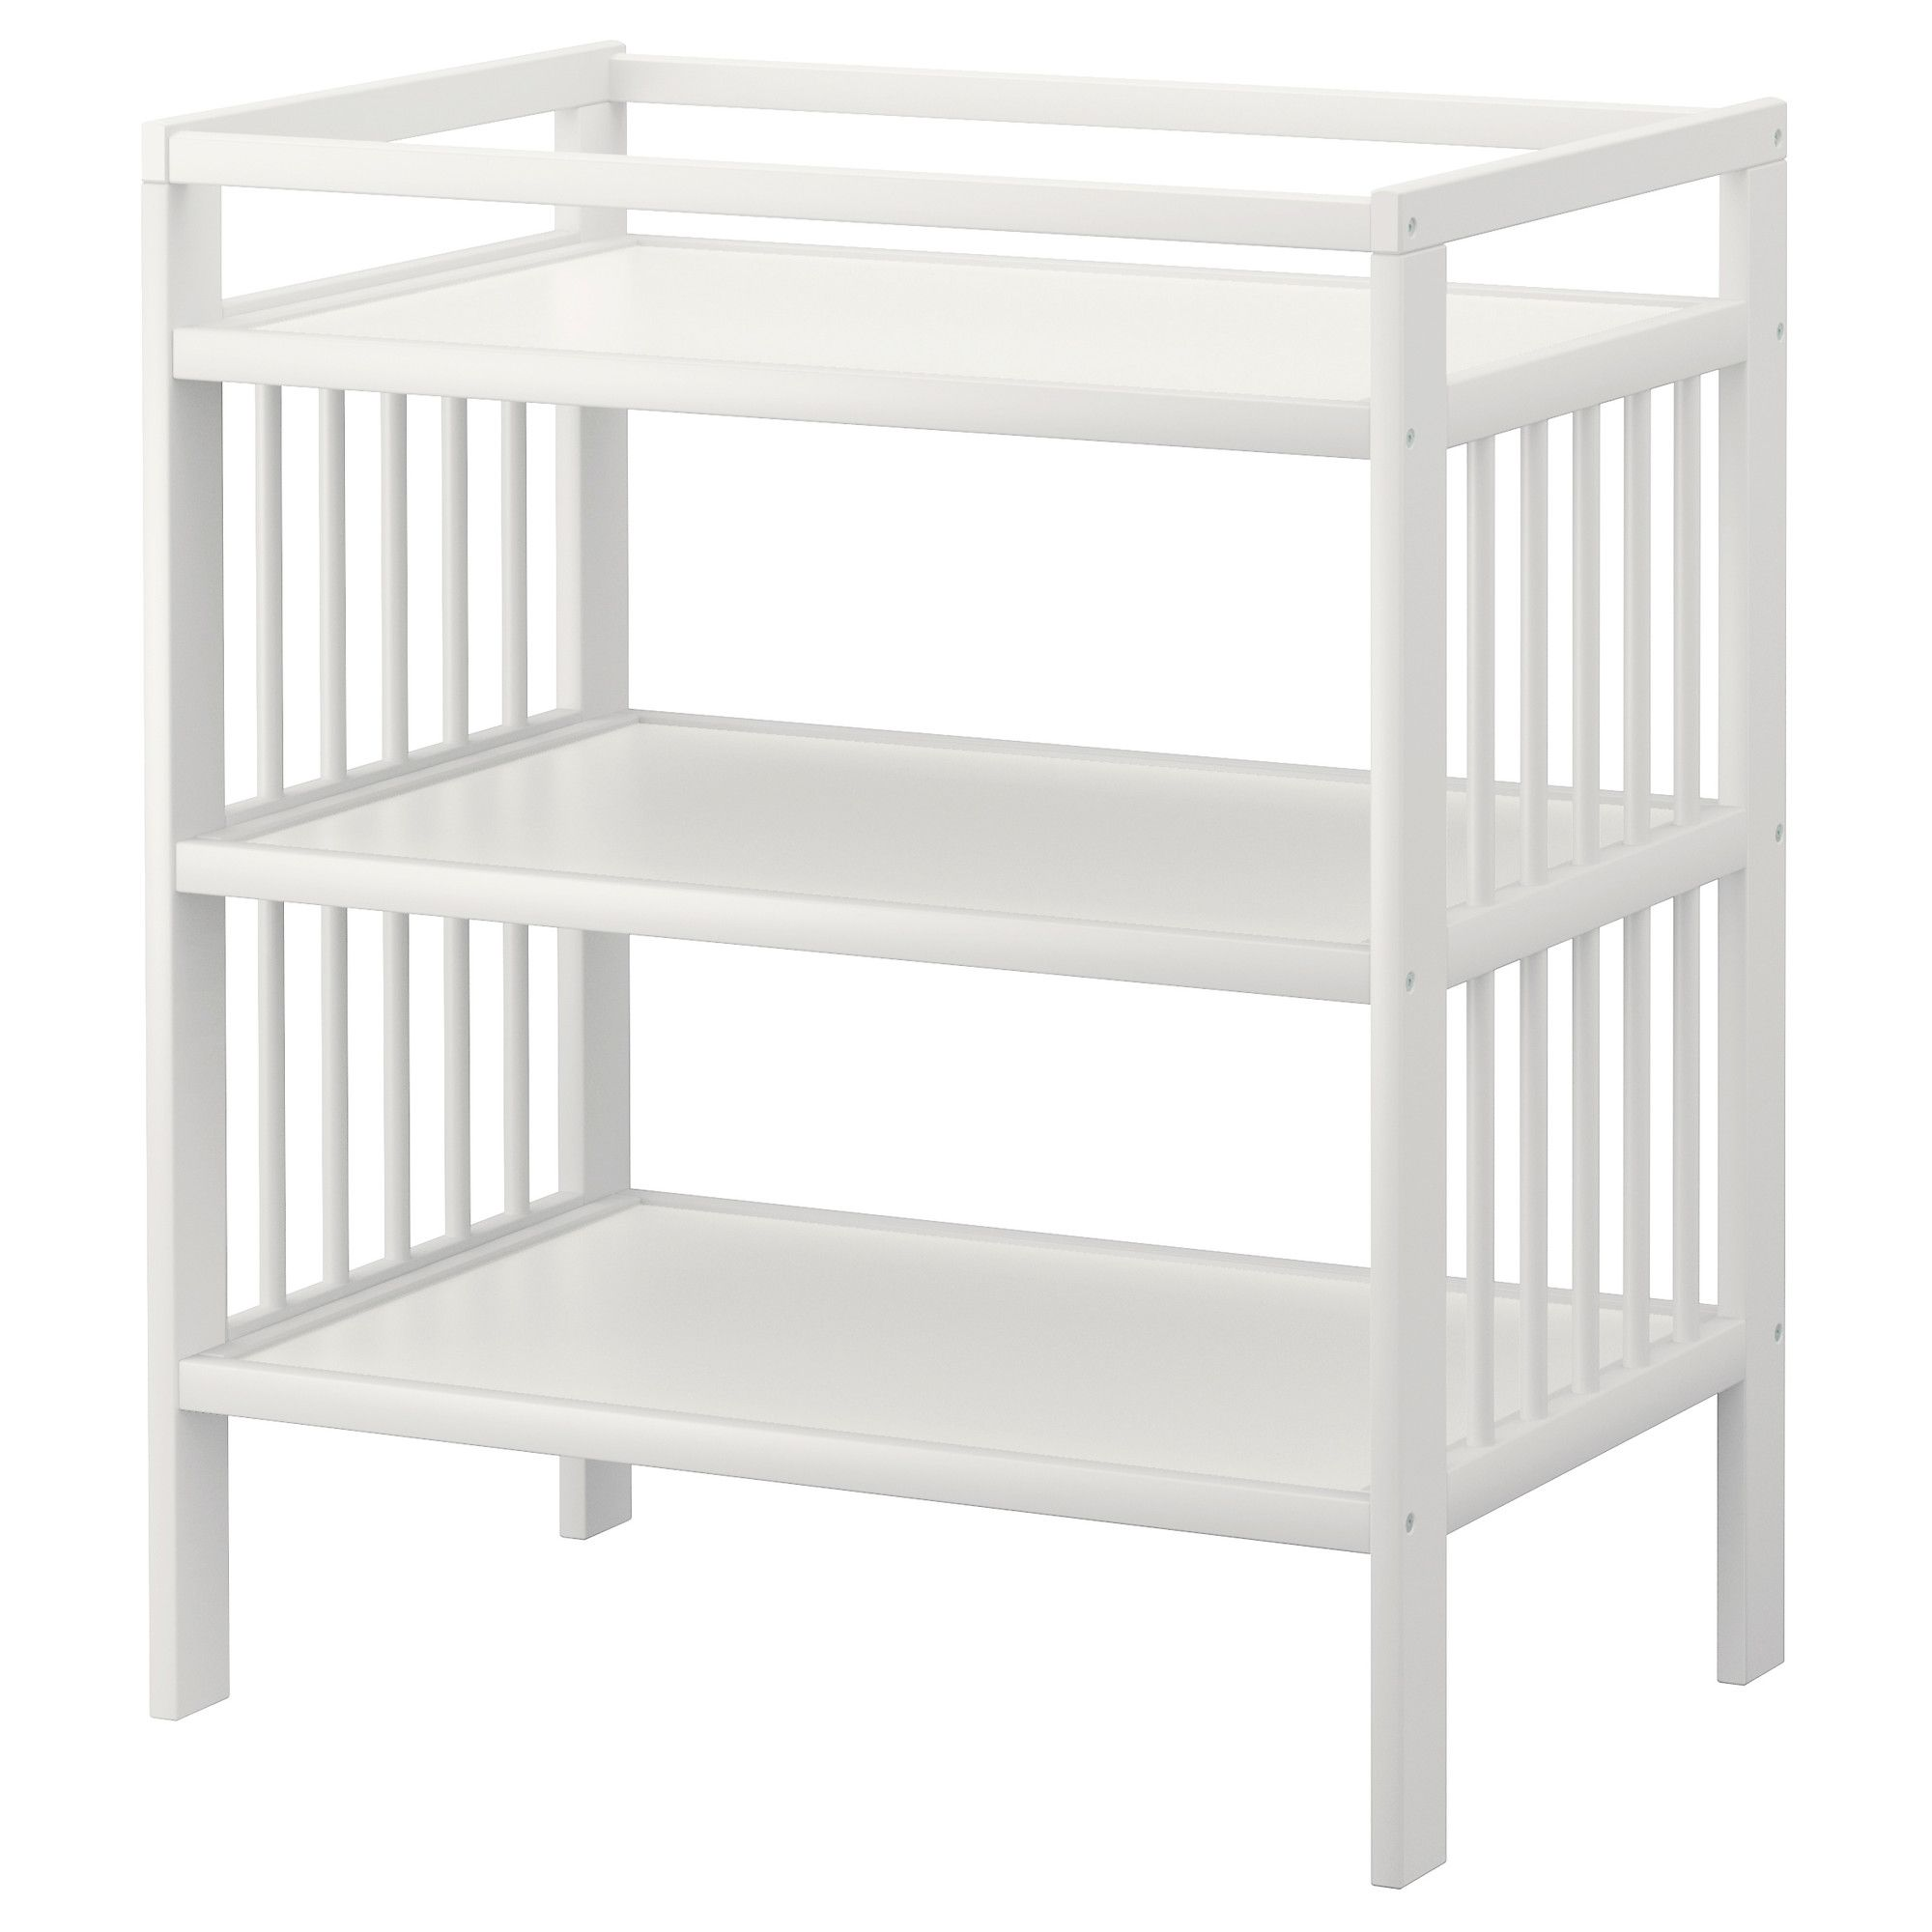 Top 15 Baby Products Of The Year: Editorsu0027 Picks   Ikea Gulliver Changing  Table